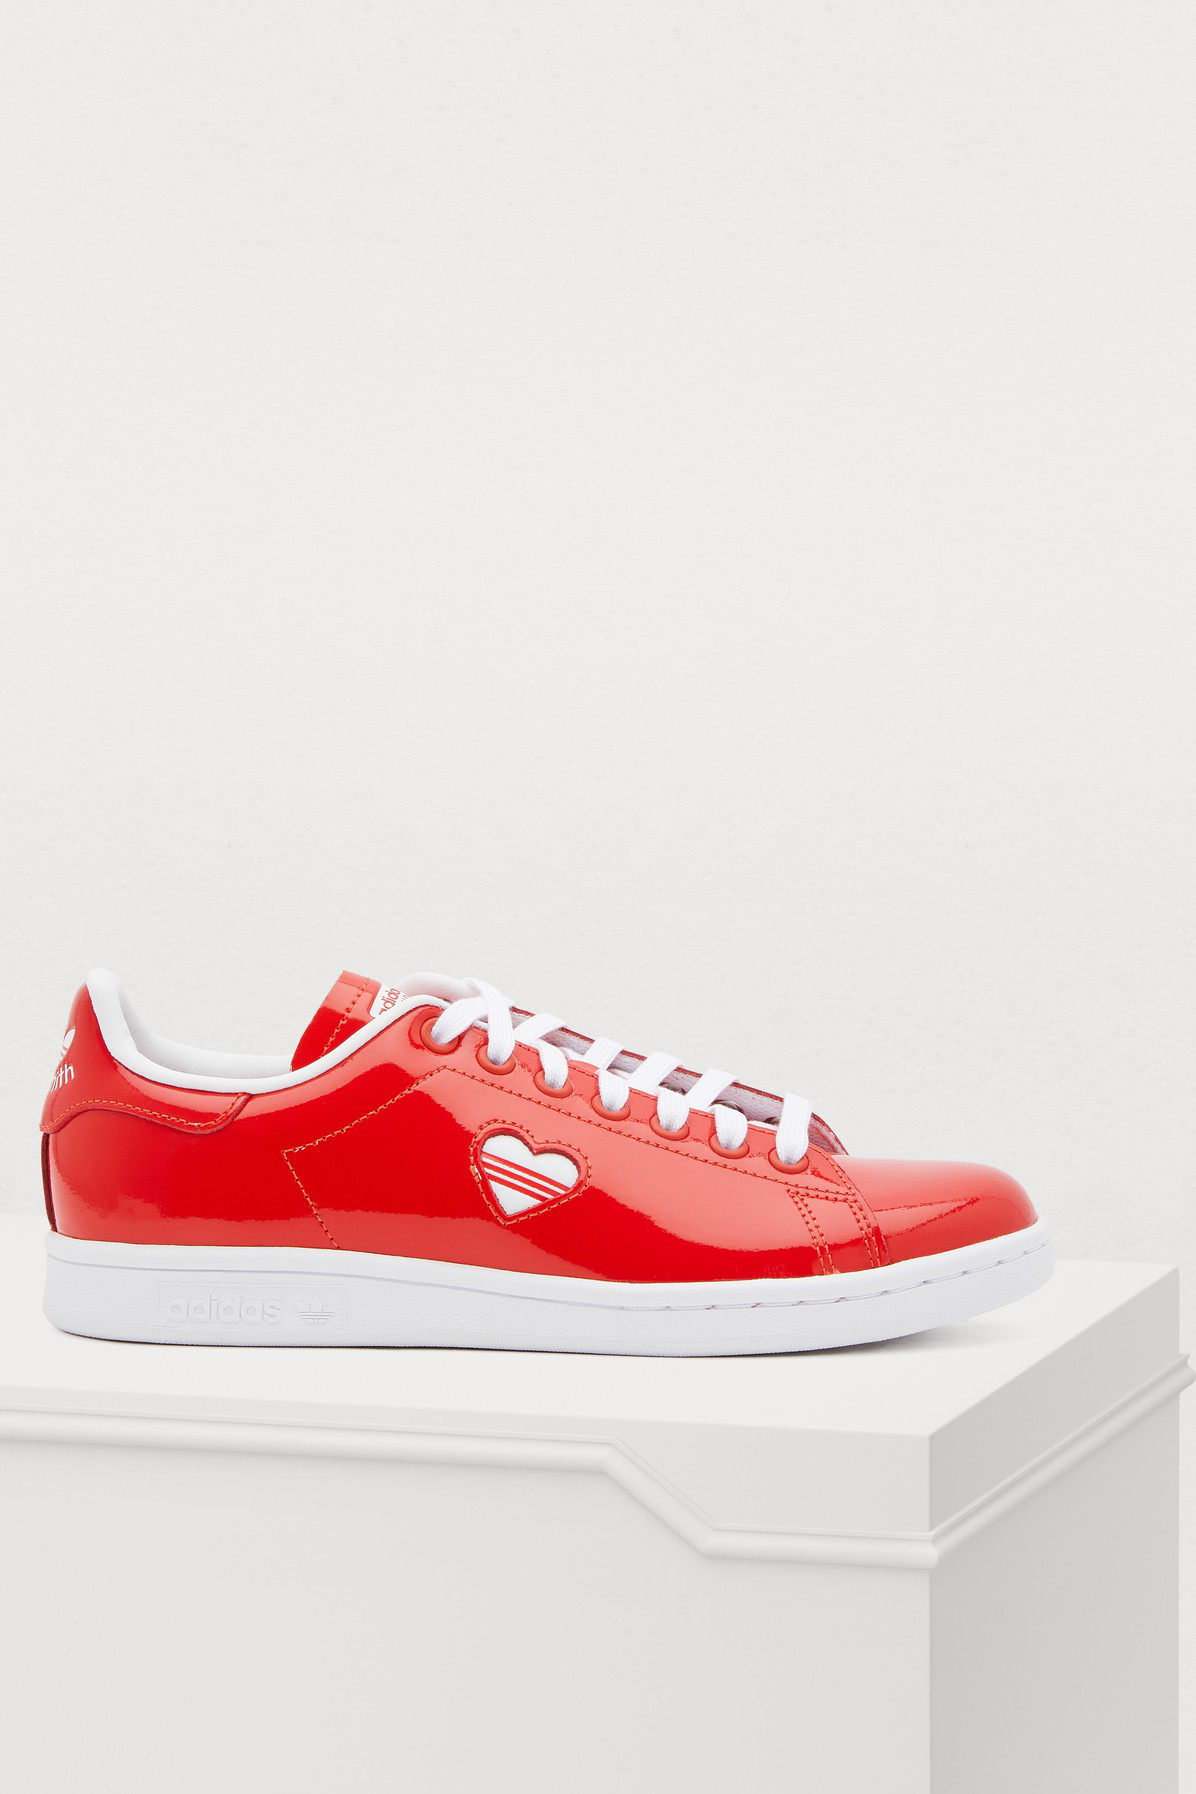 Adidas Originals Stan Smith Sneakers In Rouact/Ftwbla/Rouact